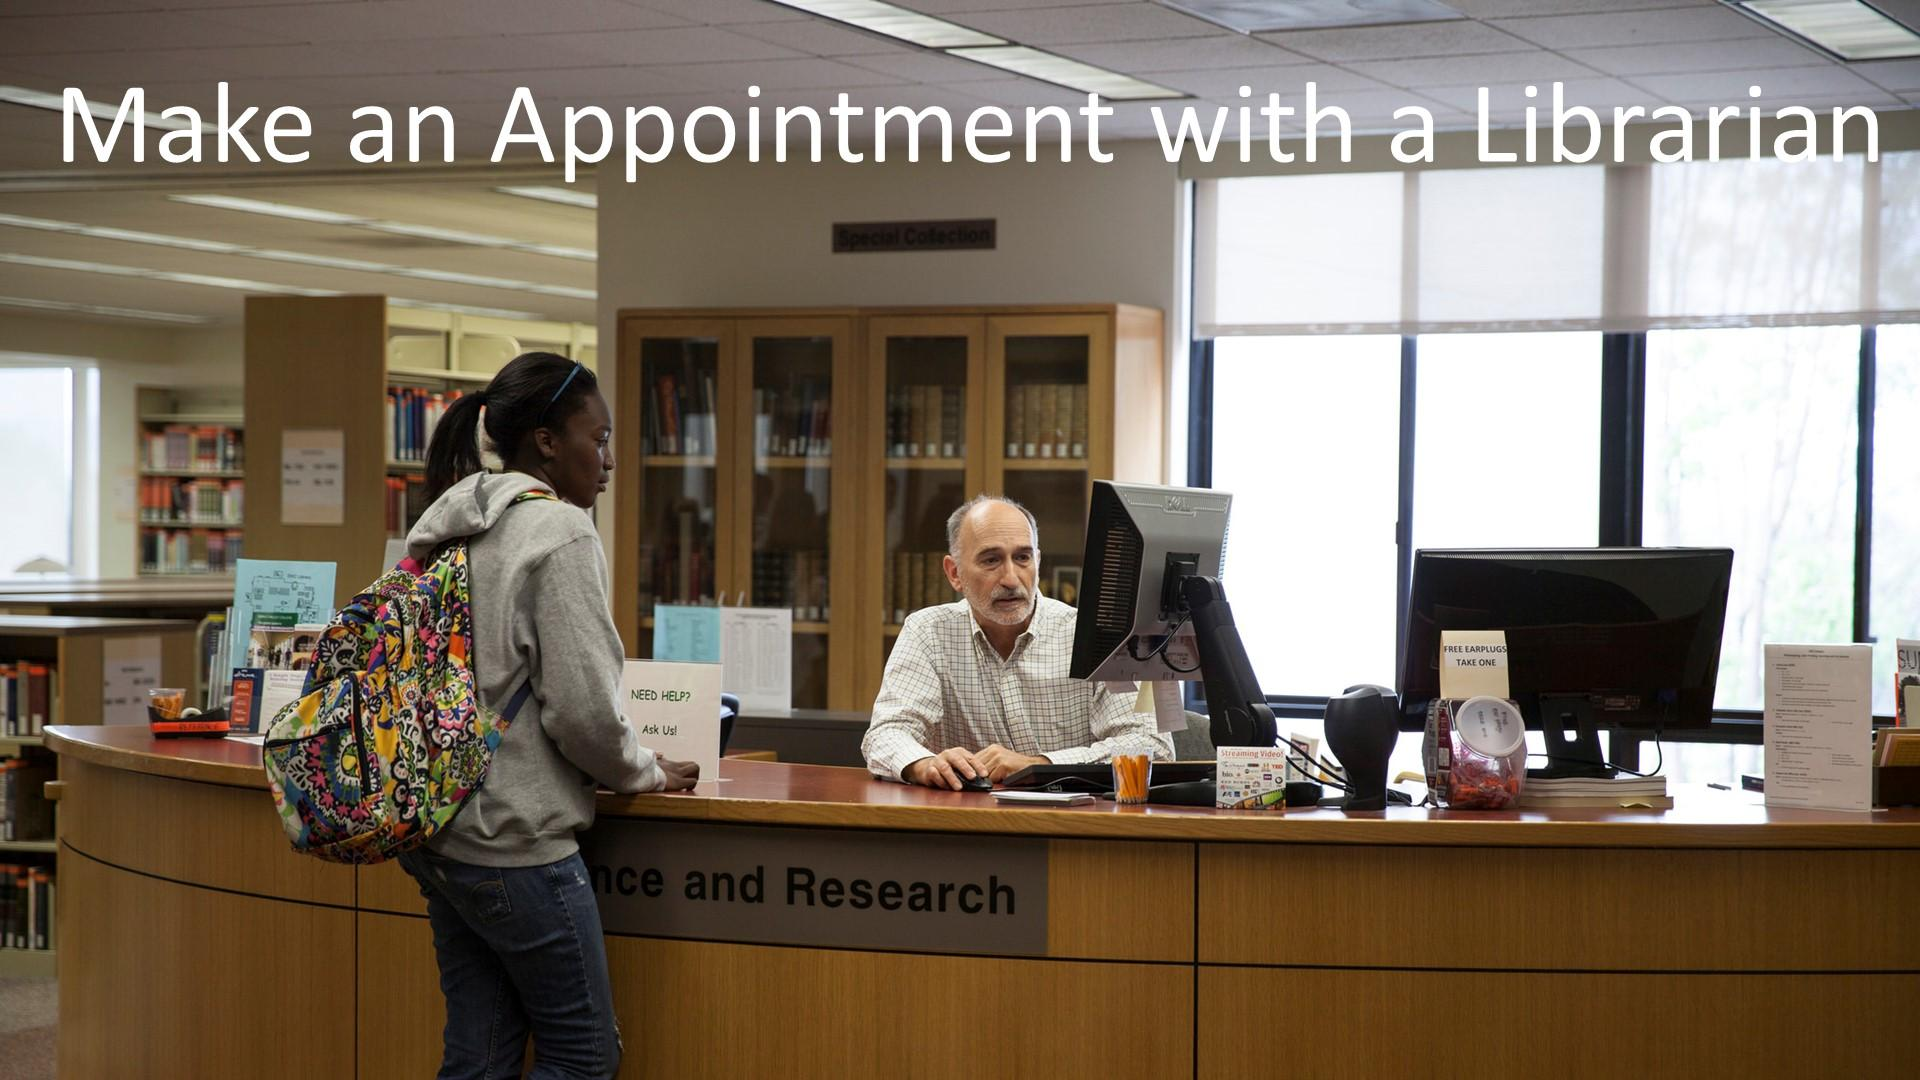 Make a one-on-one appointment with a librarian